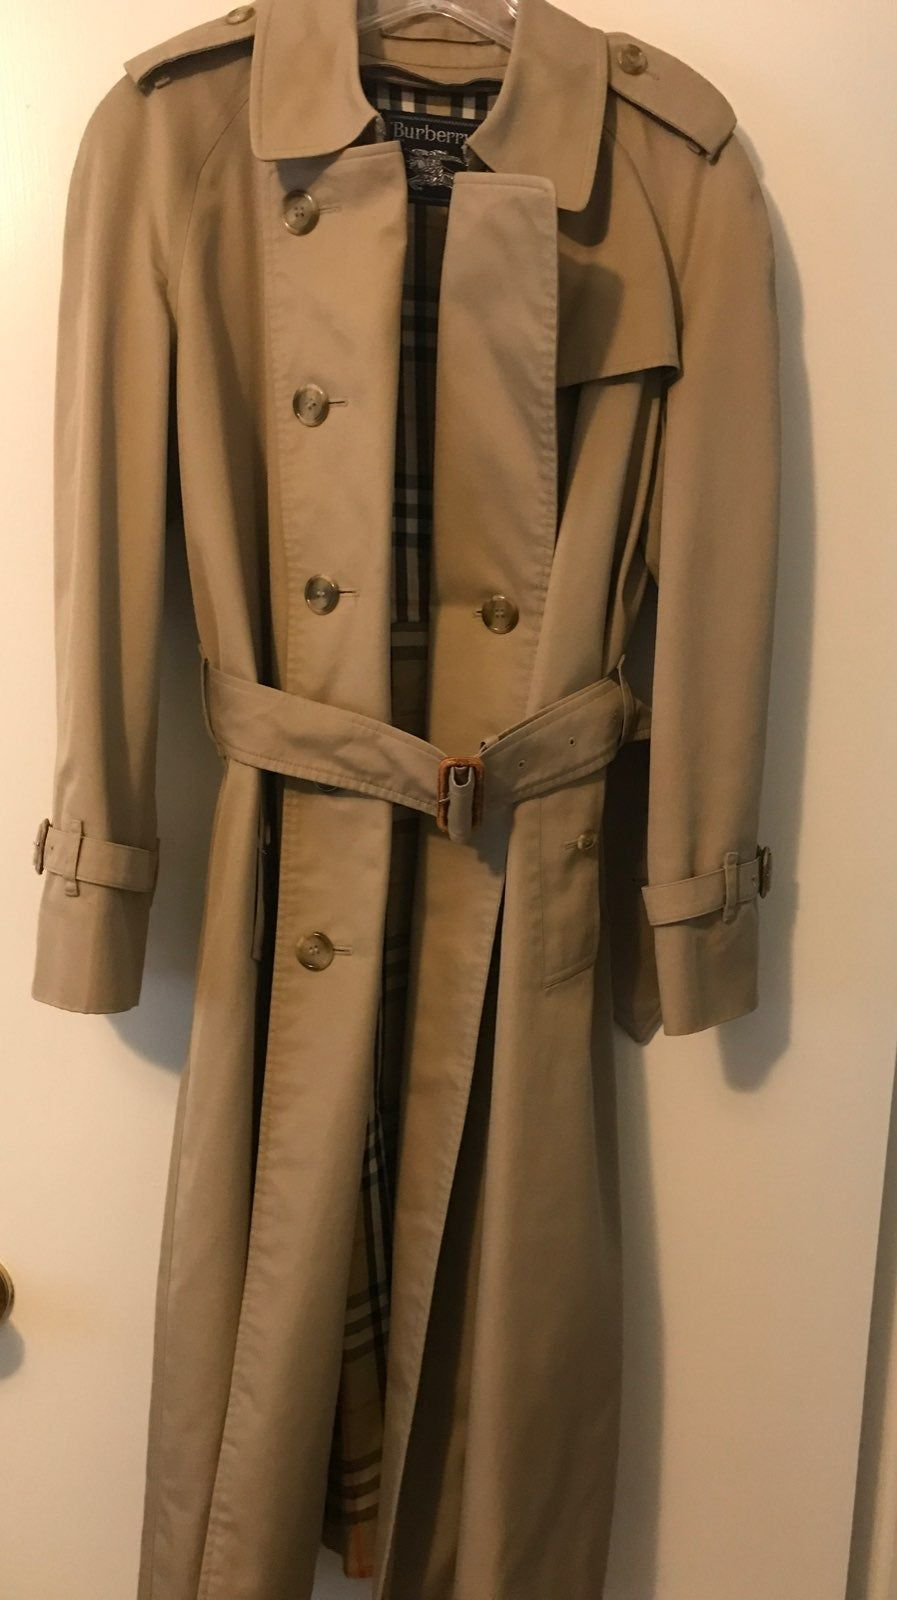 Burberrys Trench Coat No Stains Or Rips Vintage Size 14p Trench Coat Burberry Trench Coat